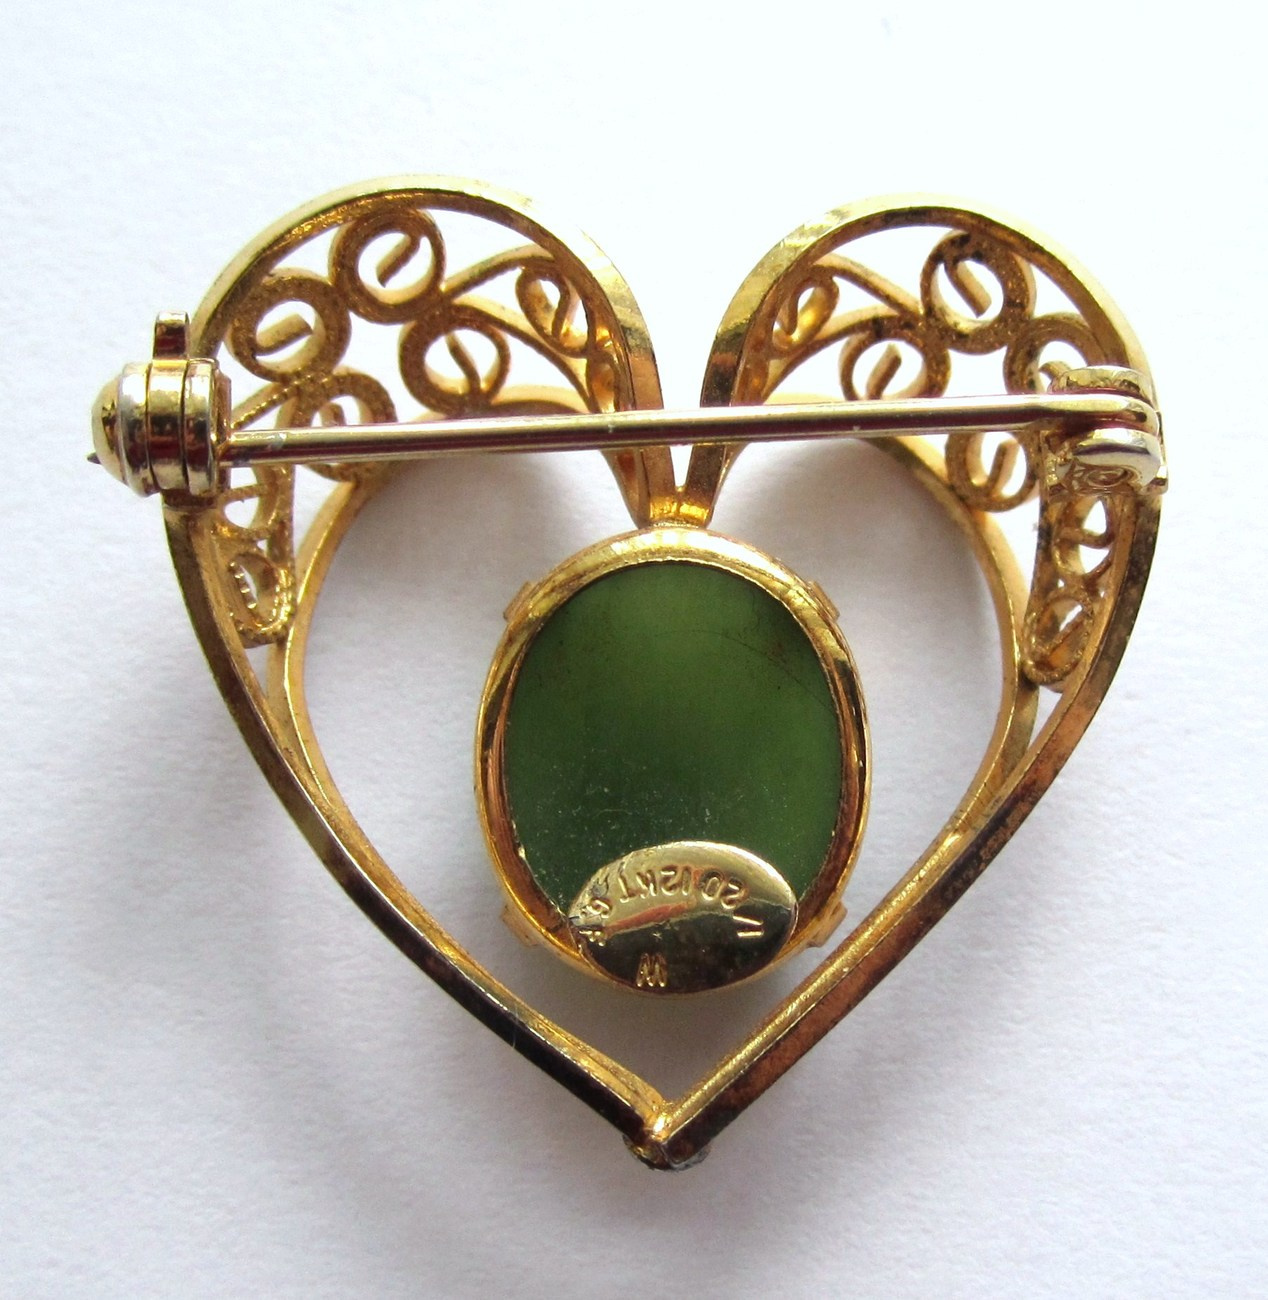 12k Gold Filled Heart Pin With Green Cabochon Stone